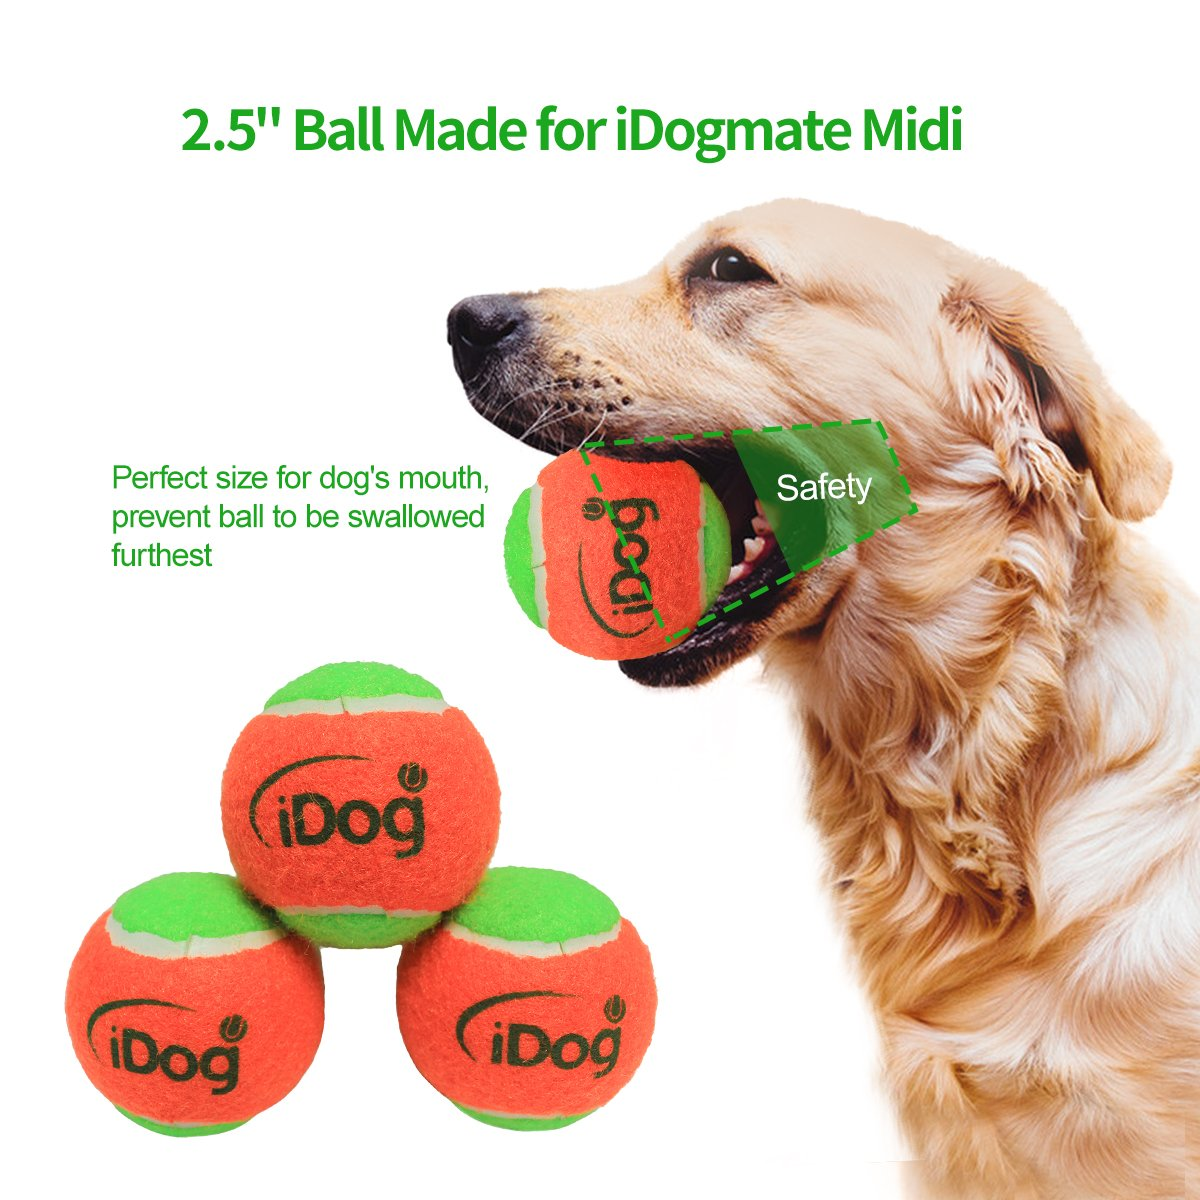 IDOGMATE Big Dog Ball Launcher, Automatic Rechargeable Tennis Ball Thrower Machine (Ball Launcher for Big Dog) by IDOGMATE (Image #2)